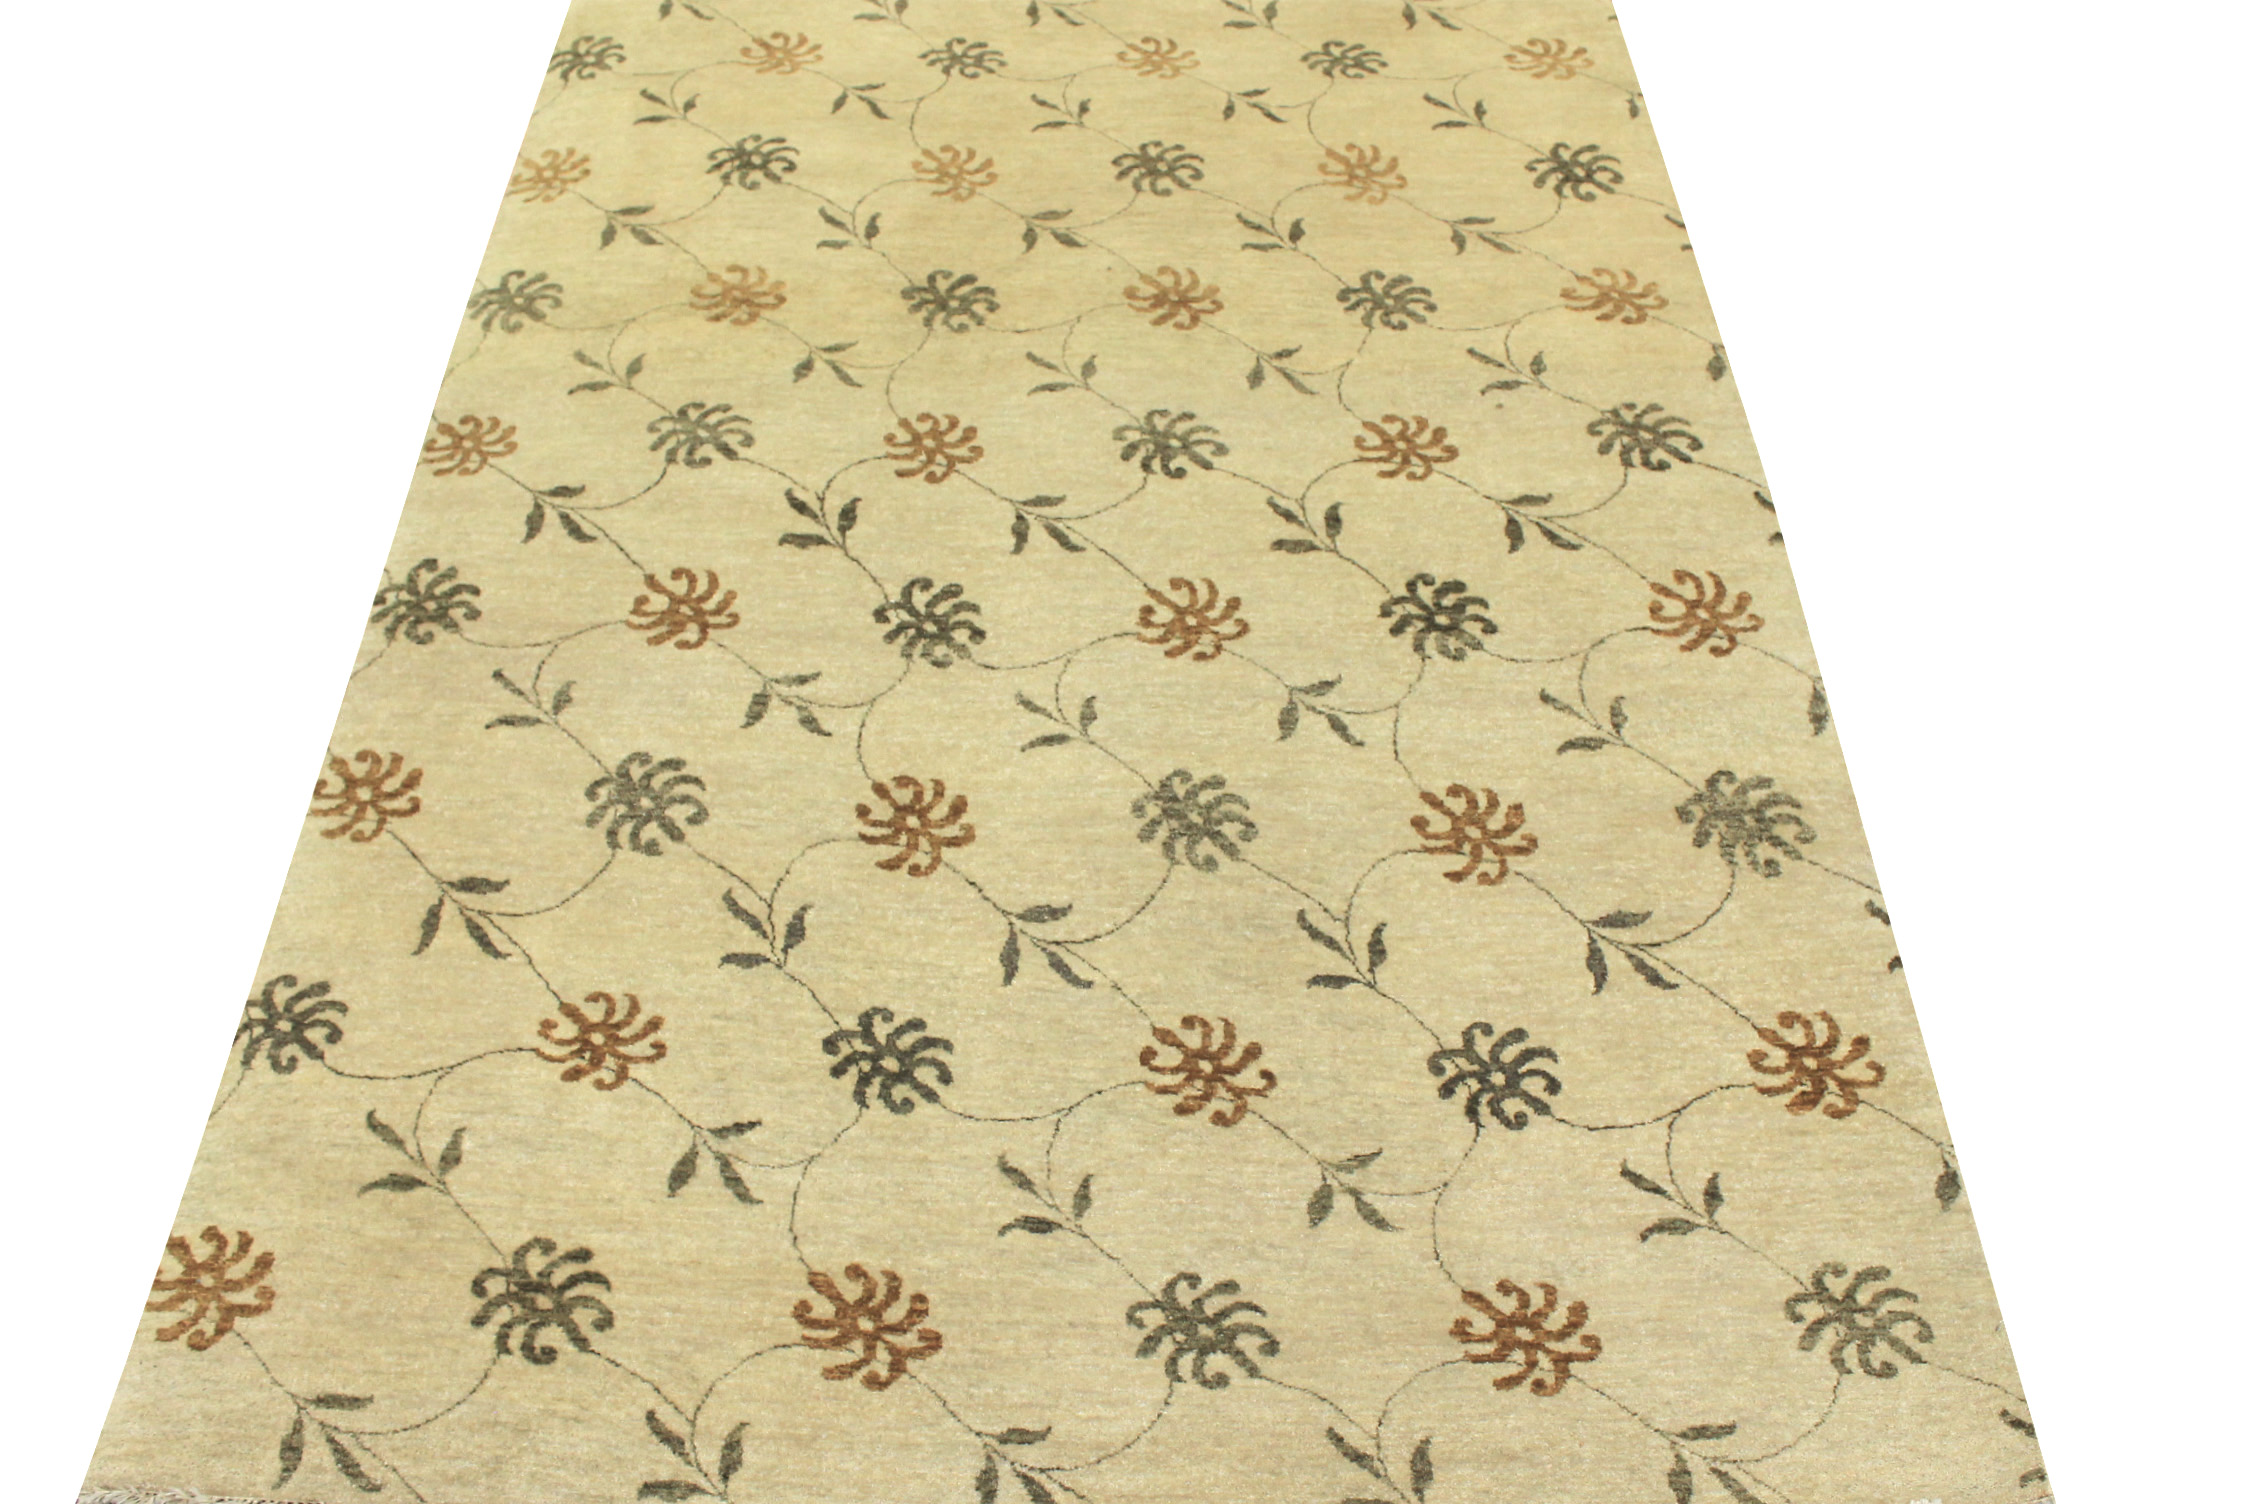 6x9 Traditional Hand Knotted Wool Area Rug - MR8439